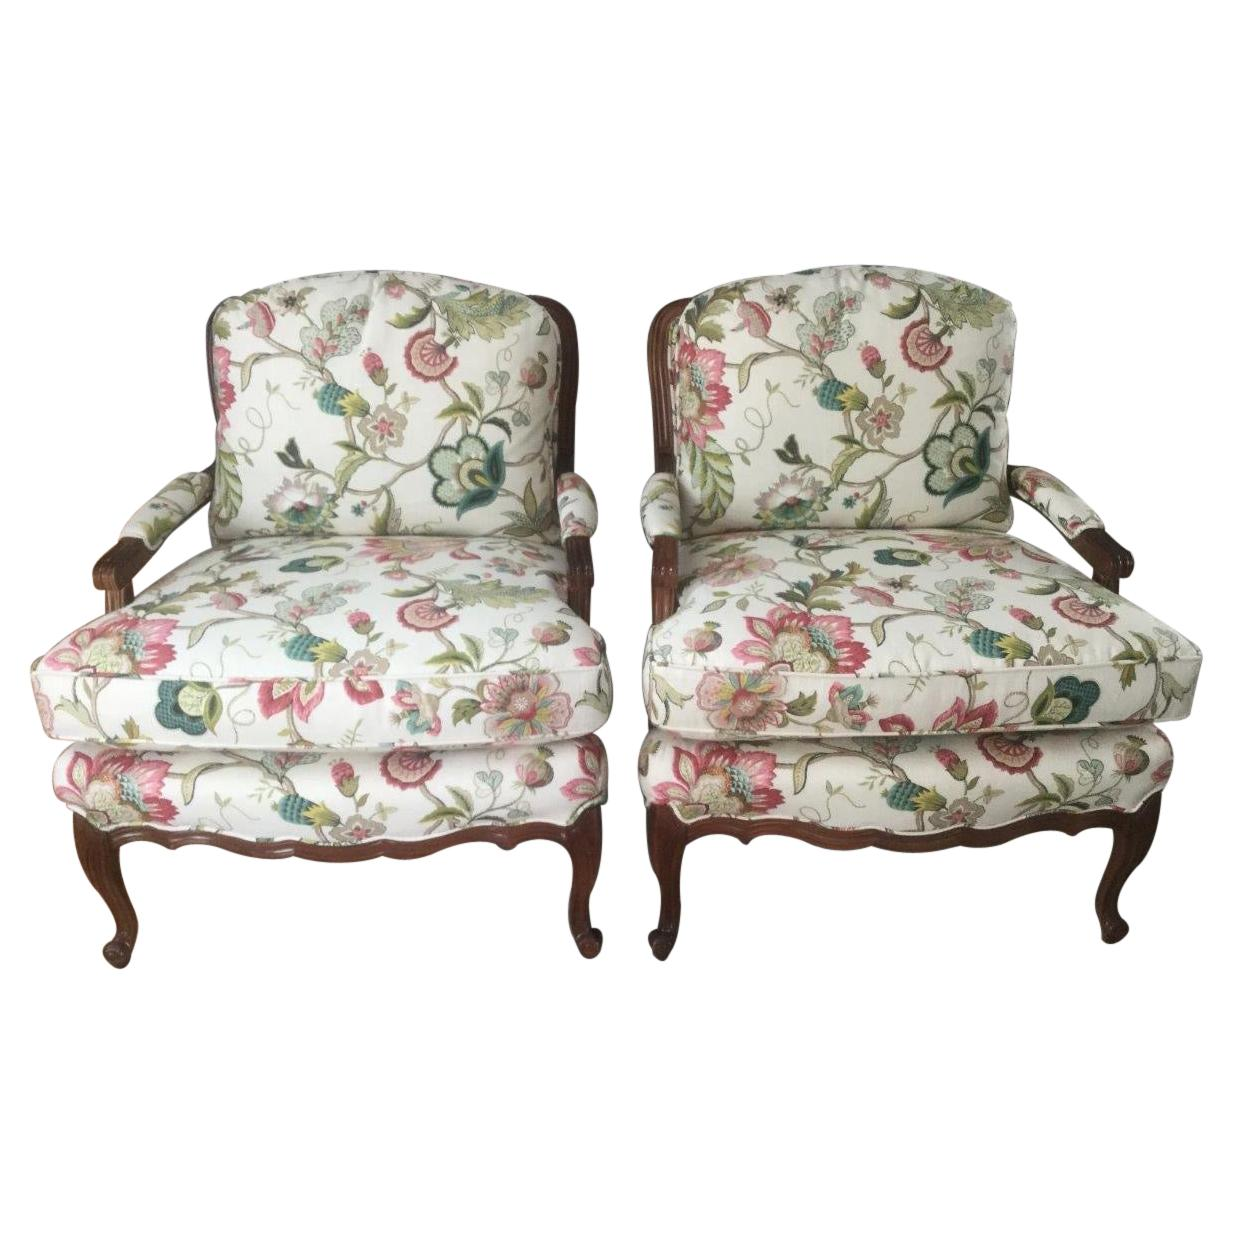 Elegant Comfy Pair of French Style Bergere Armchairs with Floral Upholstery